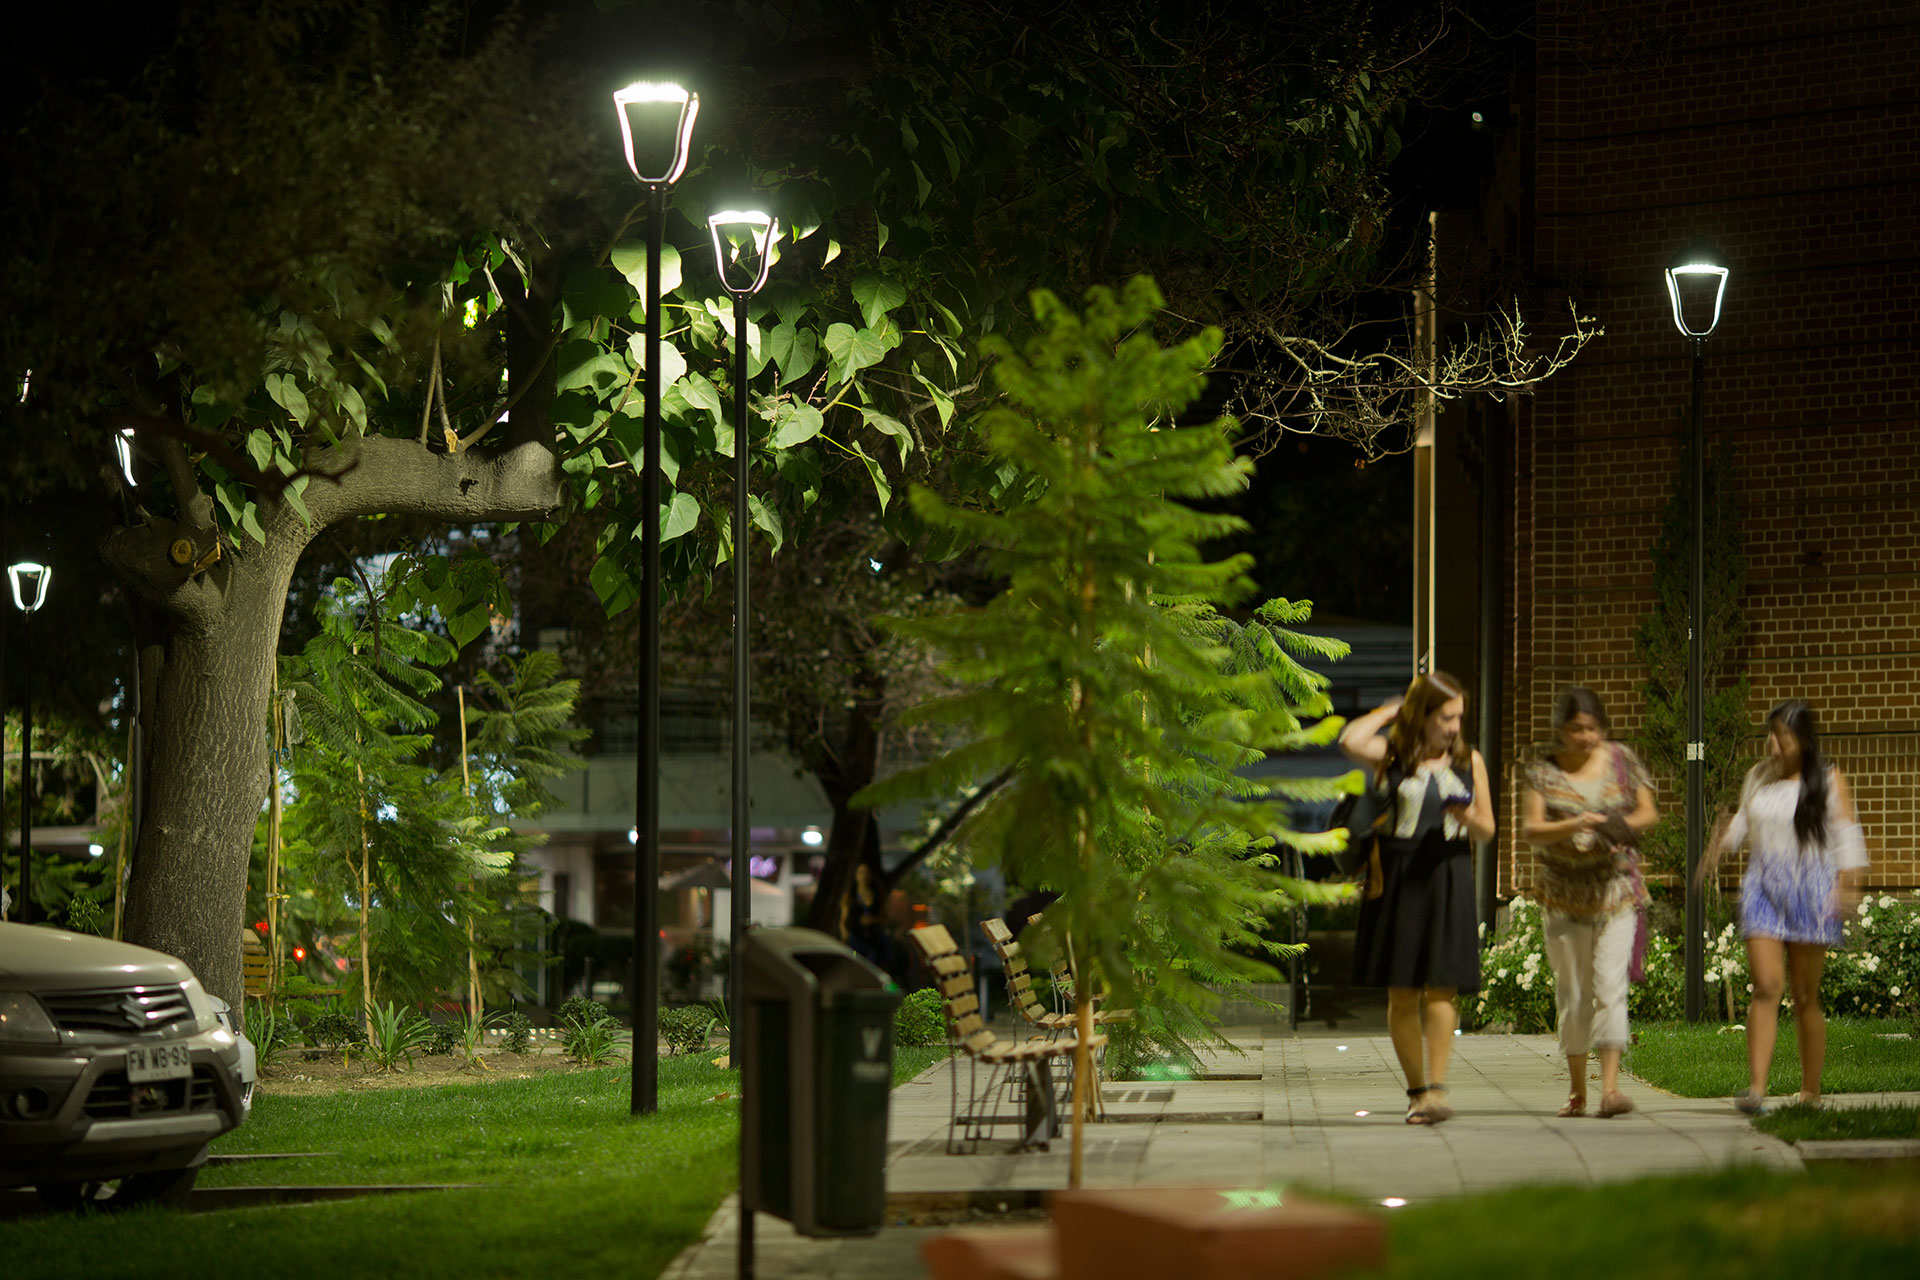 Thanks to a smart lighting scheme, residents feel much more confident in spending time outdoors in Vitacura